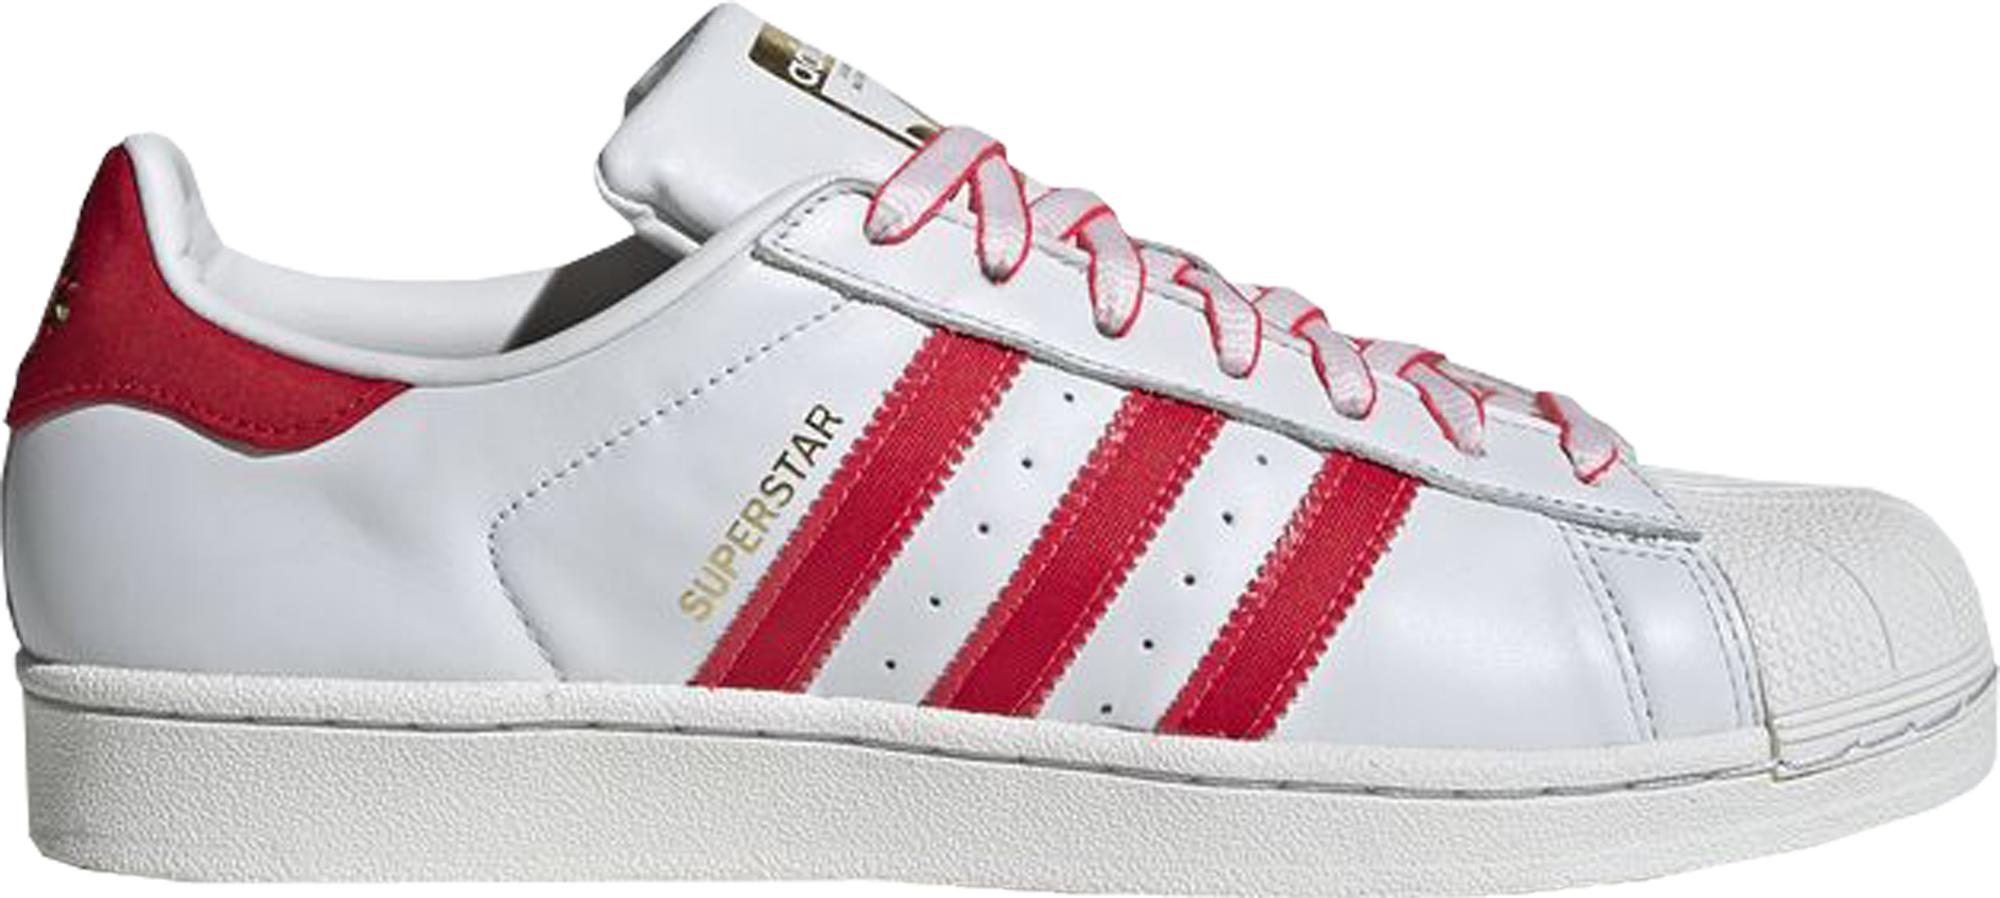 adidas superstar chinese new year gold